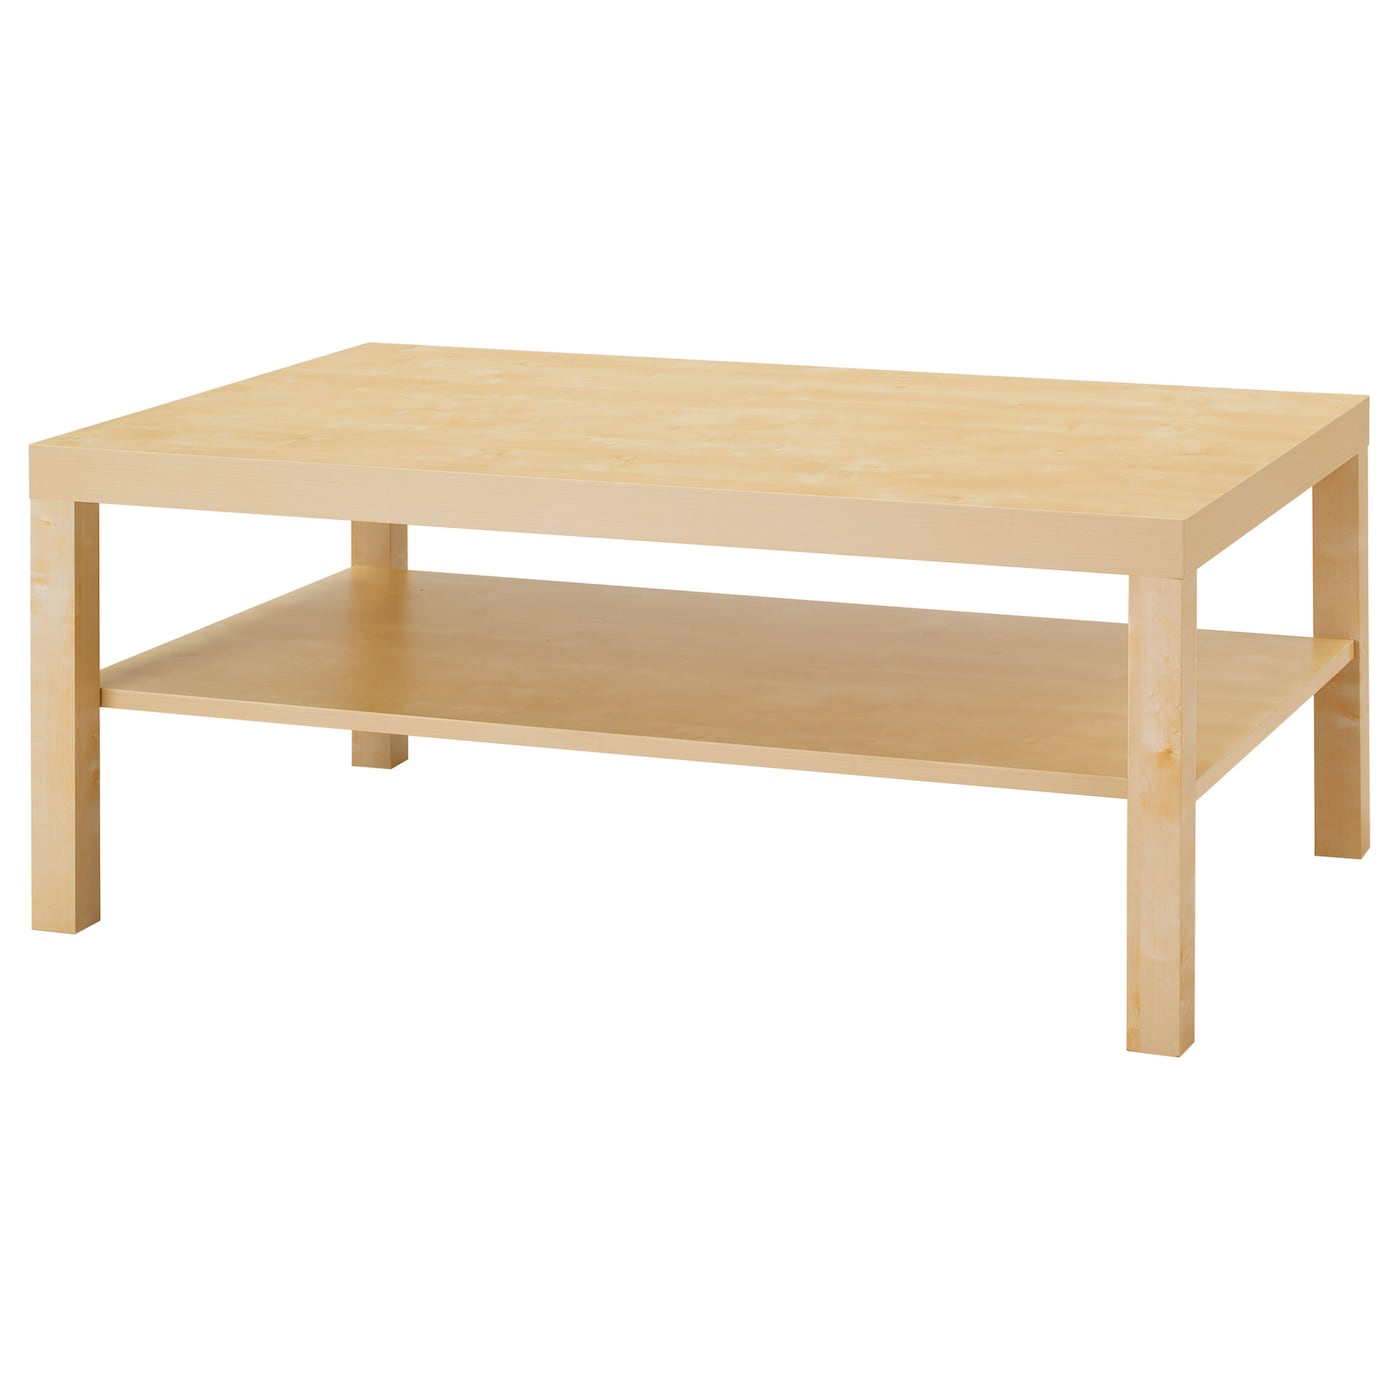 Lack coffee table birch effect 118x78 cm ikea Side and coffee tables